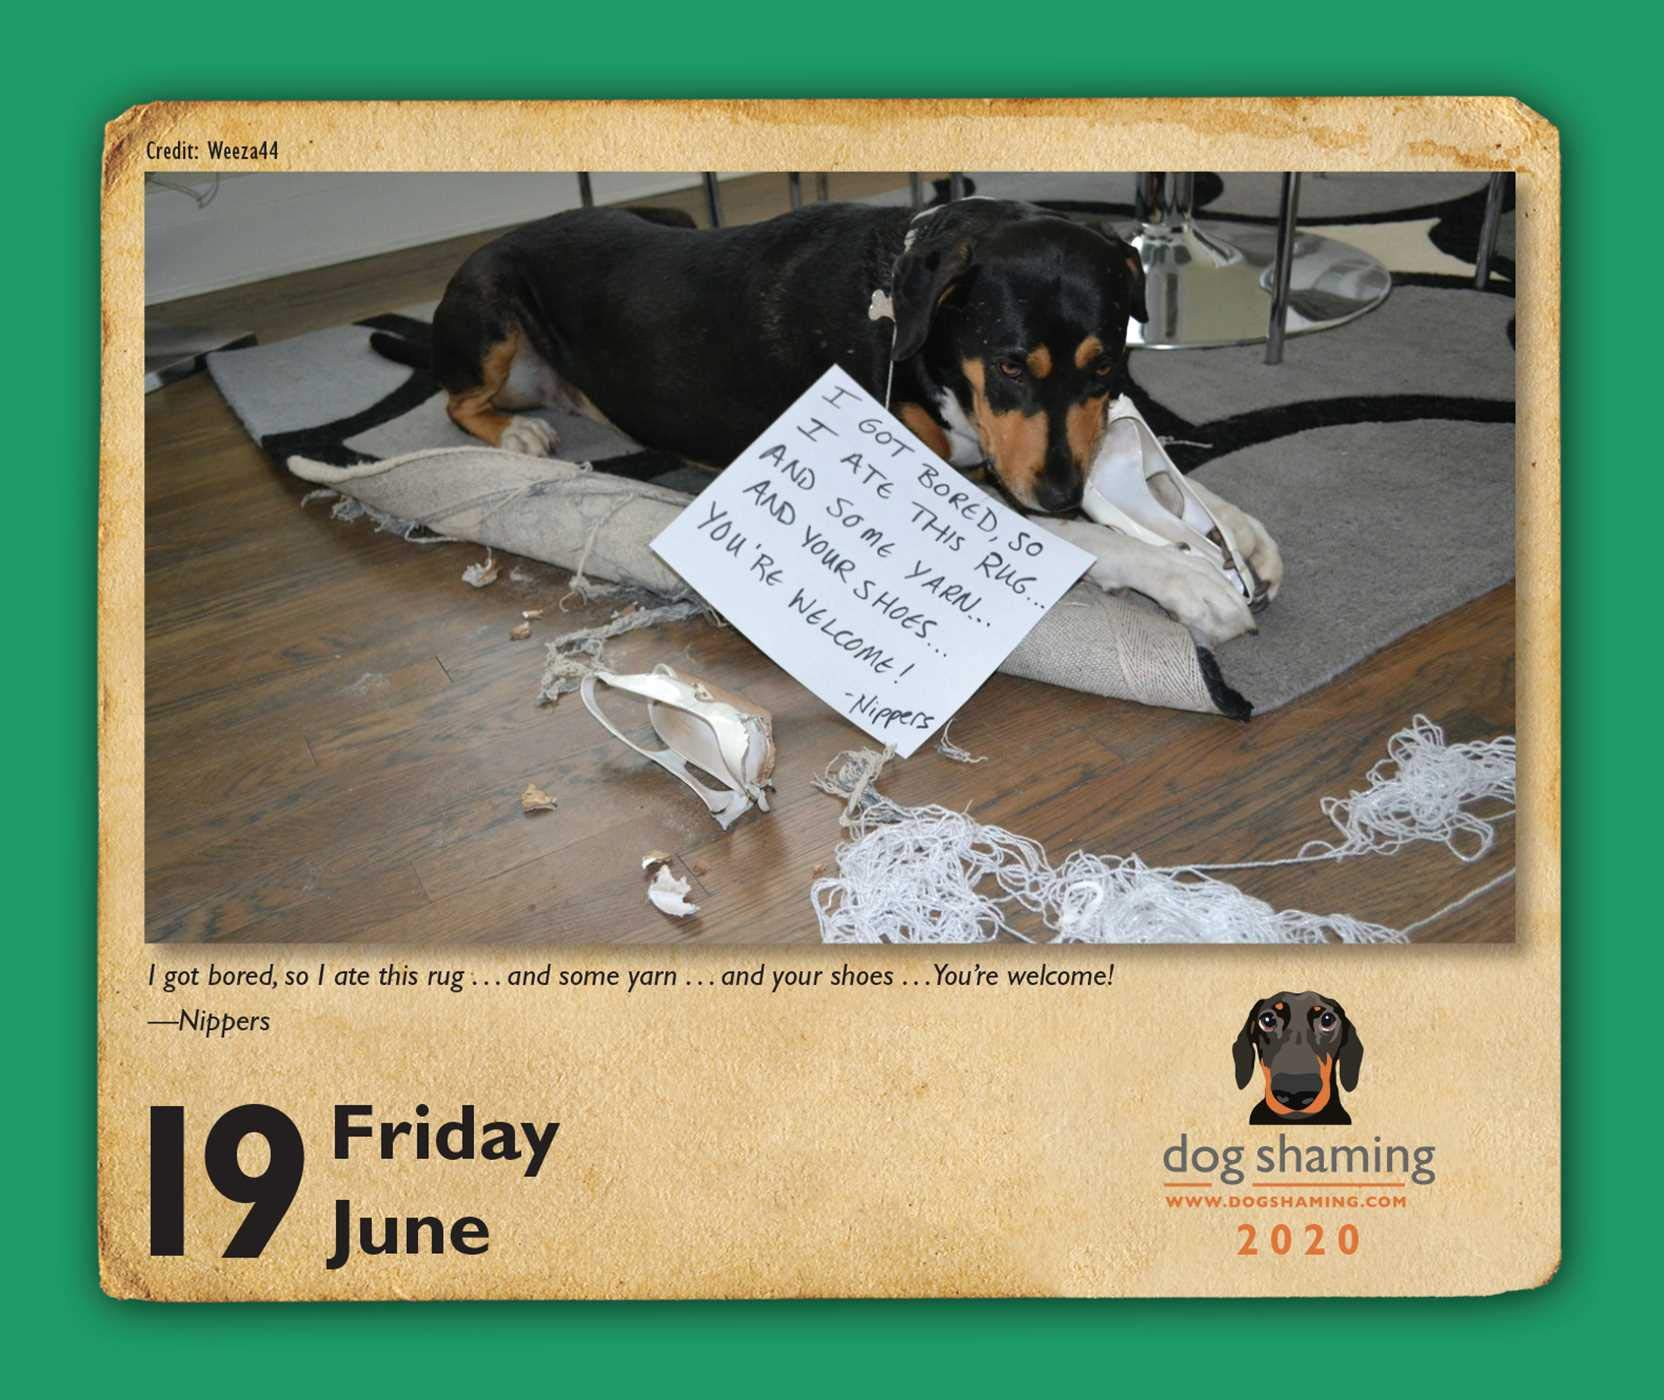 Dog Shaming Calendar 2020 Dog Shaming 2020 Day to Day Calendar: Pascale Lemire, dogshaming